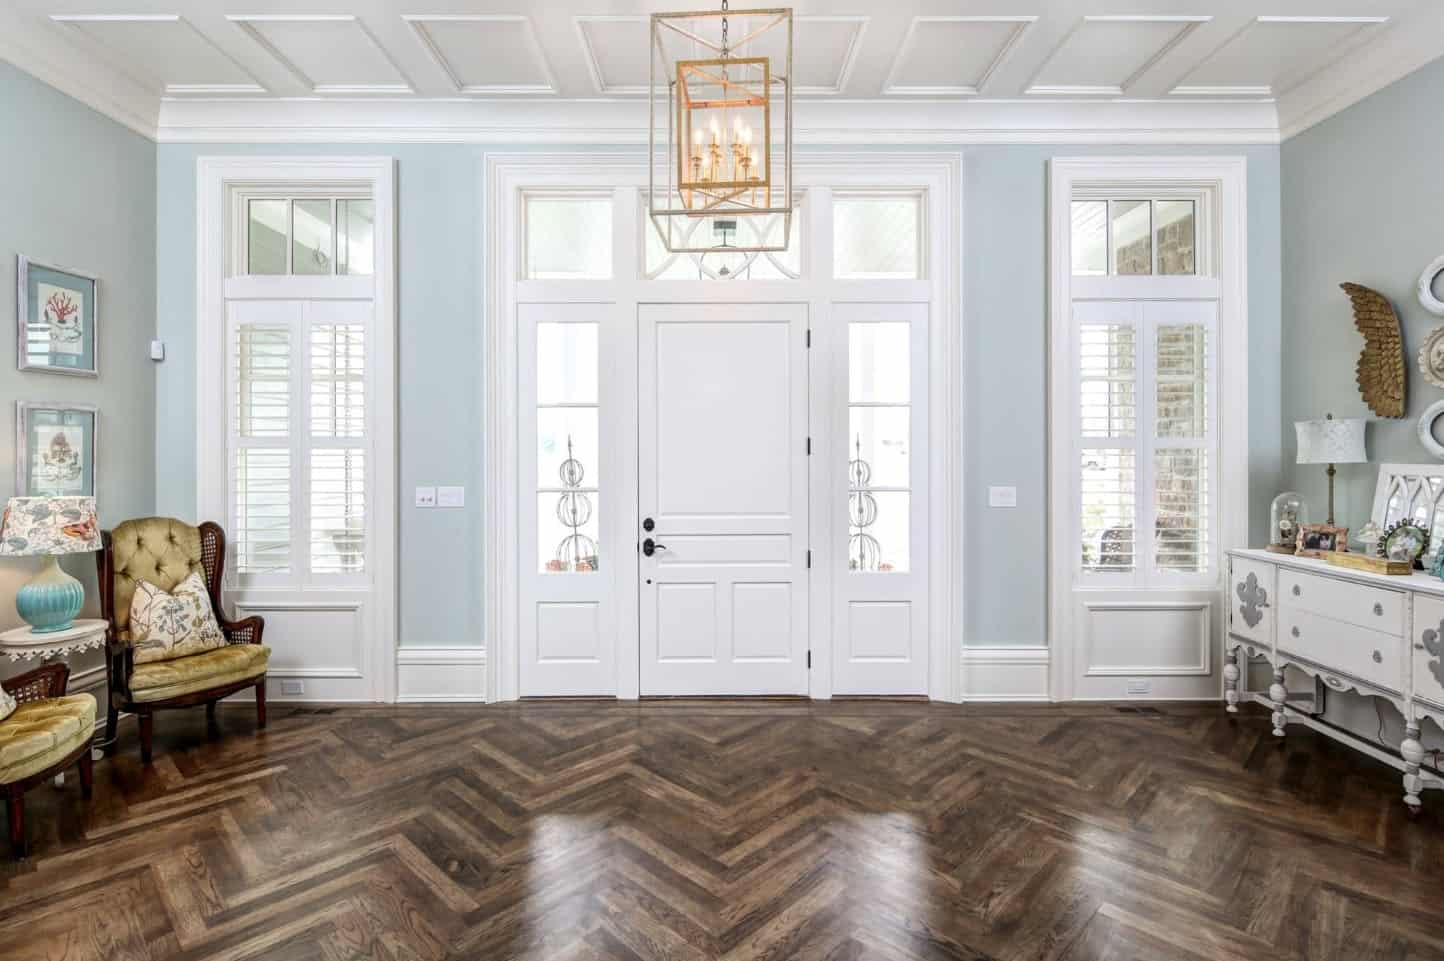 Charming foyer illuminated by a brass caged pendant that hung from a coffered ceiling and over a herringbone wood flooring.